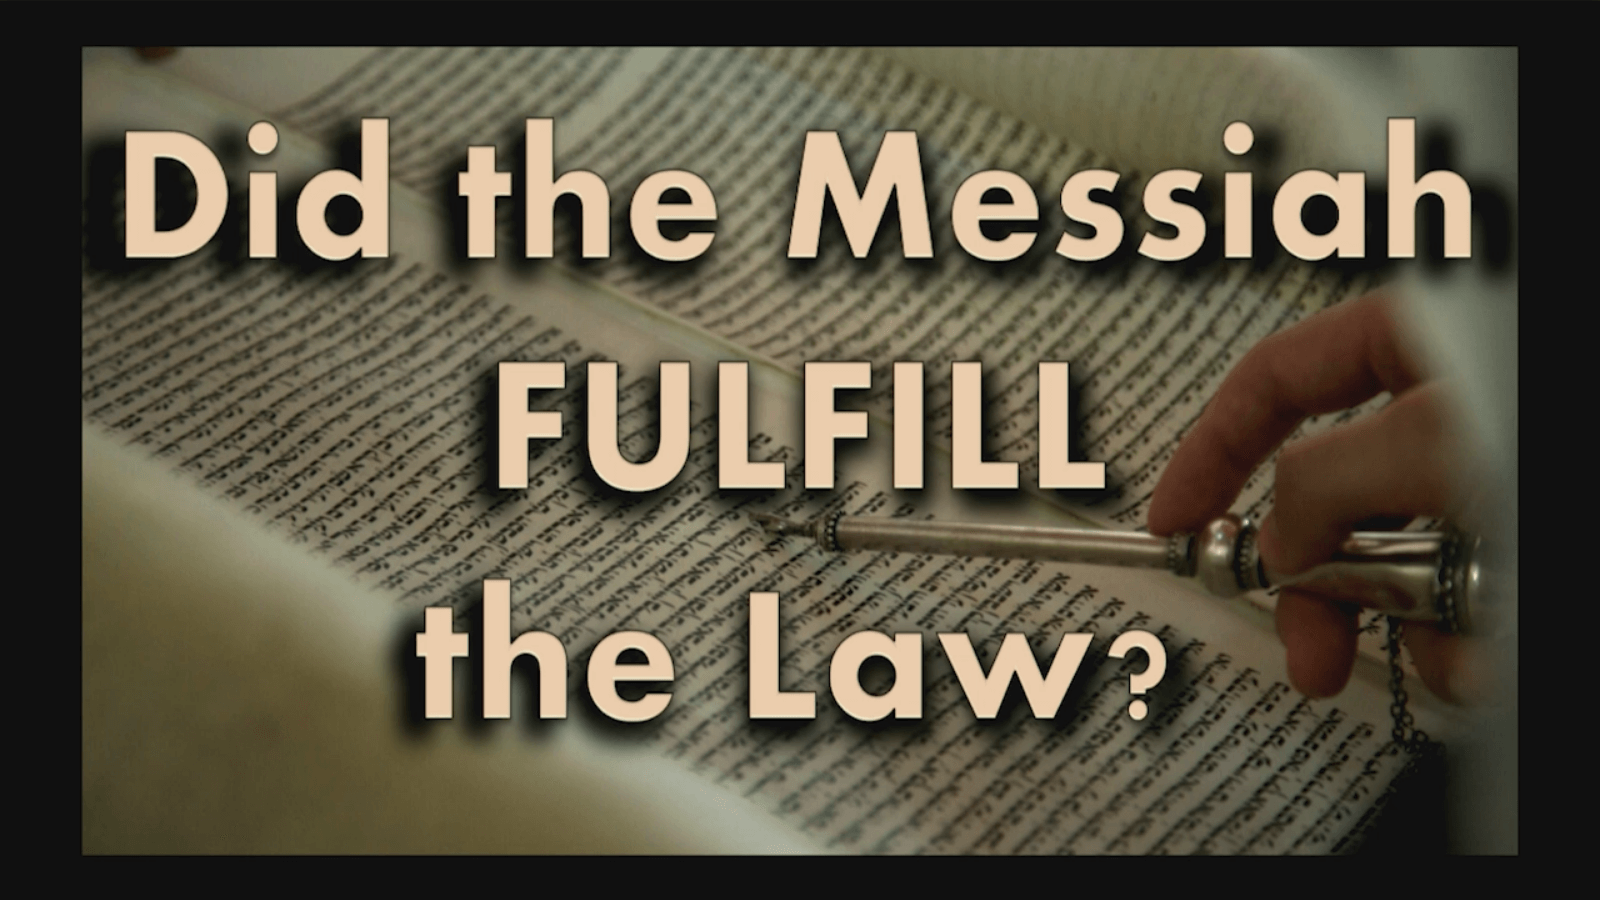 Did the Messiah Fulfill the Law?